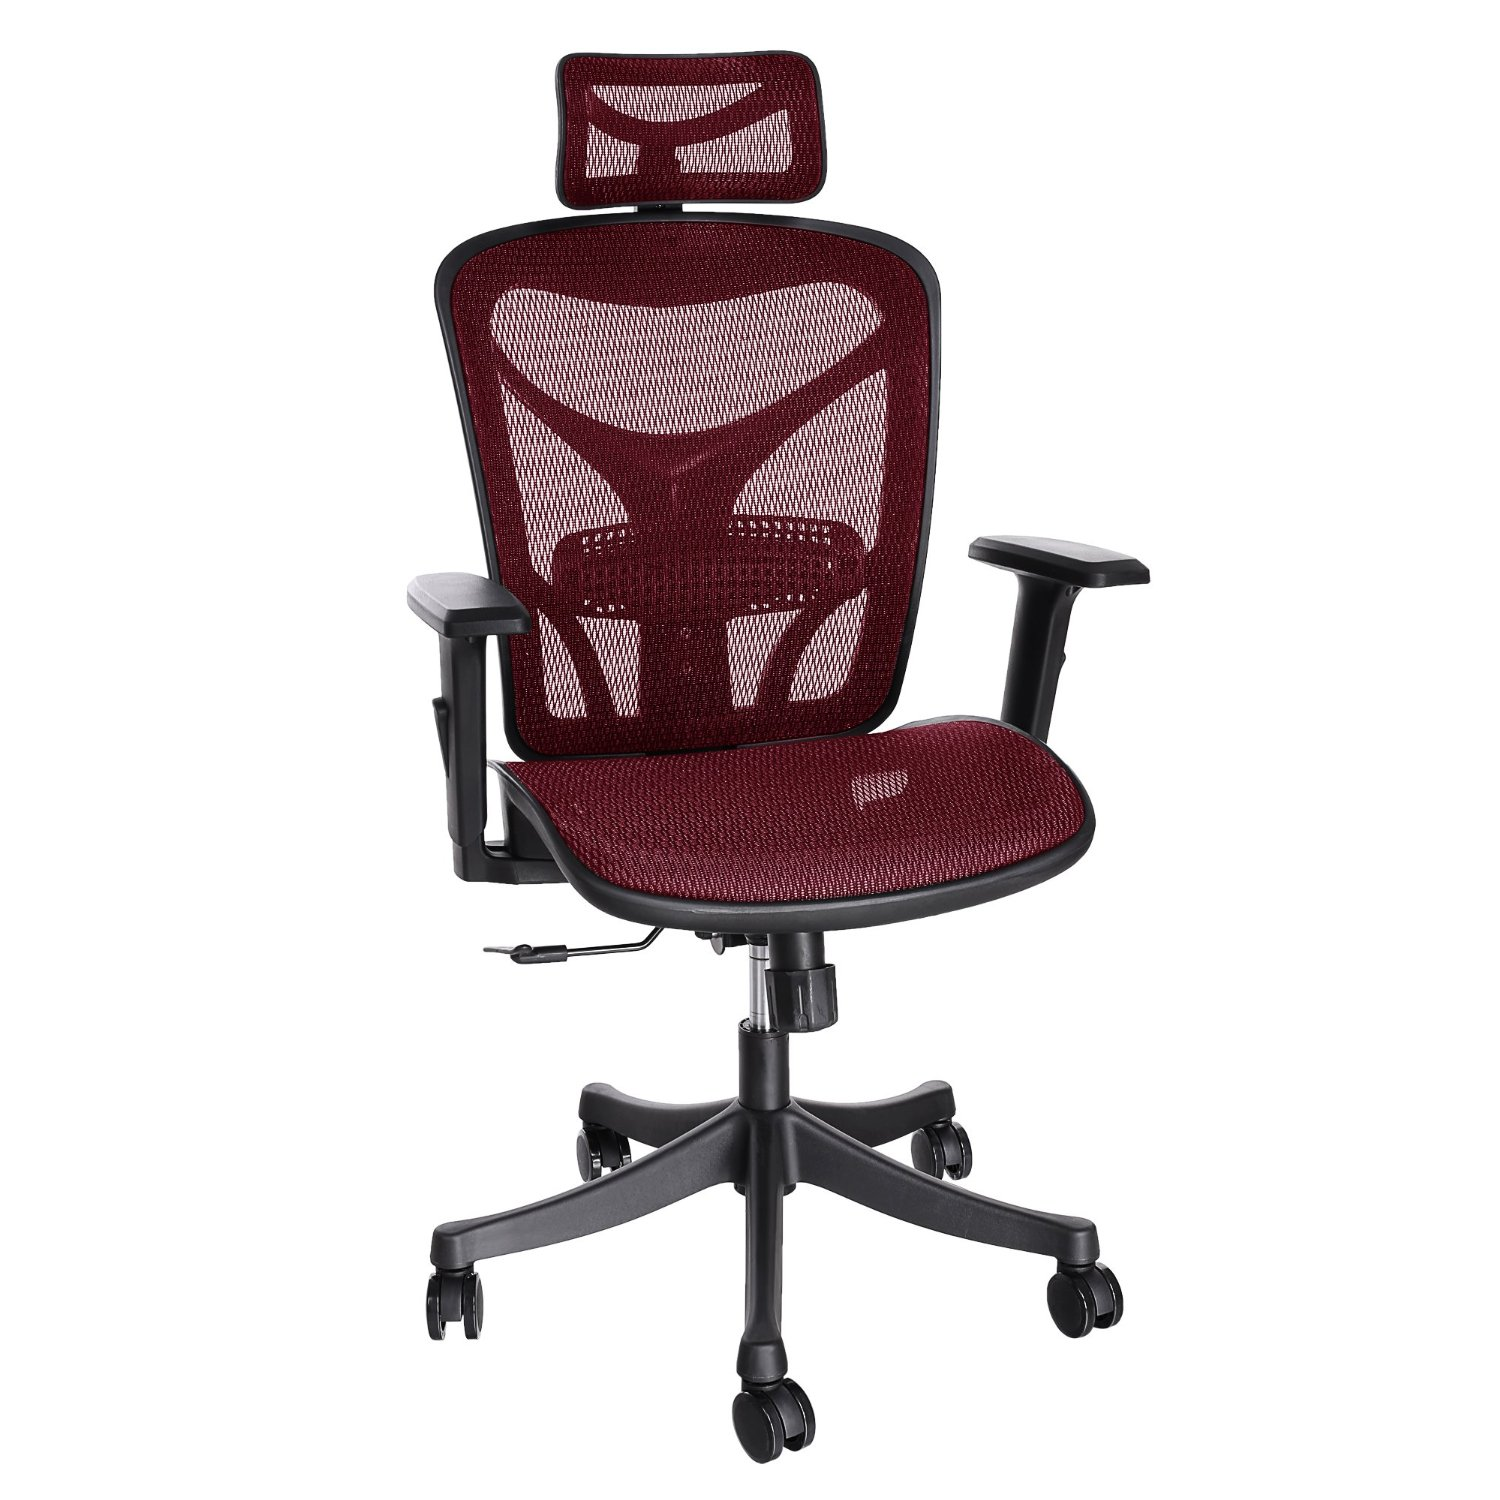 ancheer mount ergonomic mesh office chair deals, coupons, & reviews